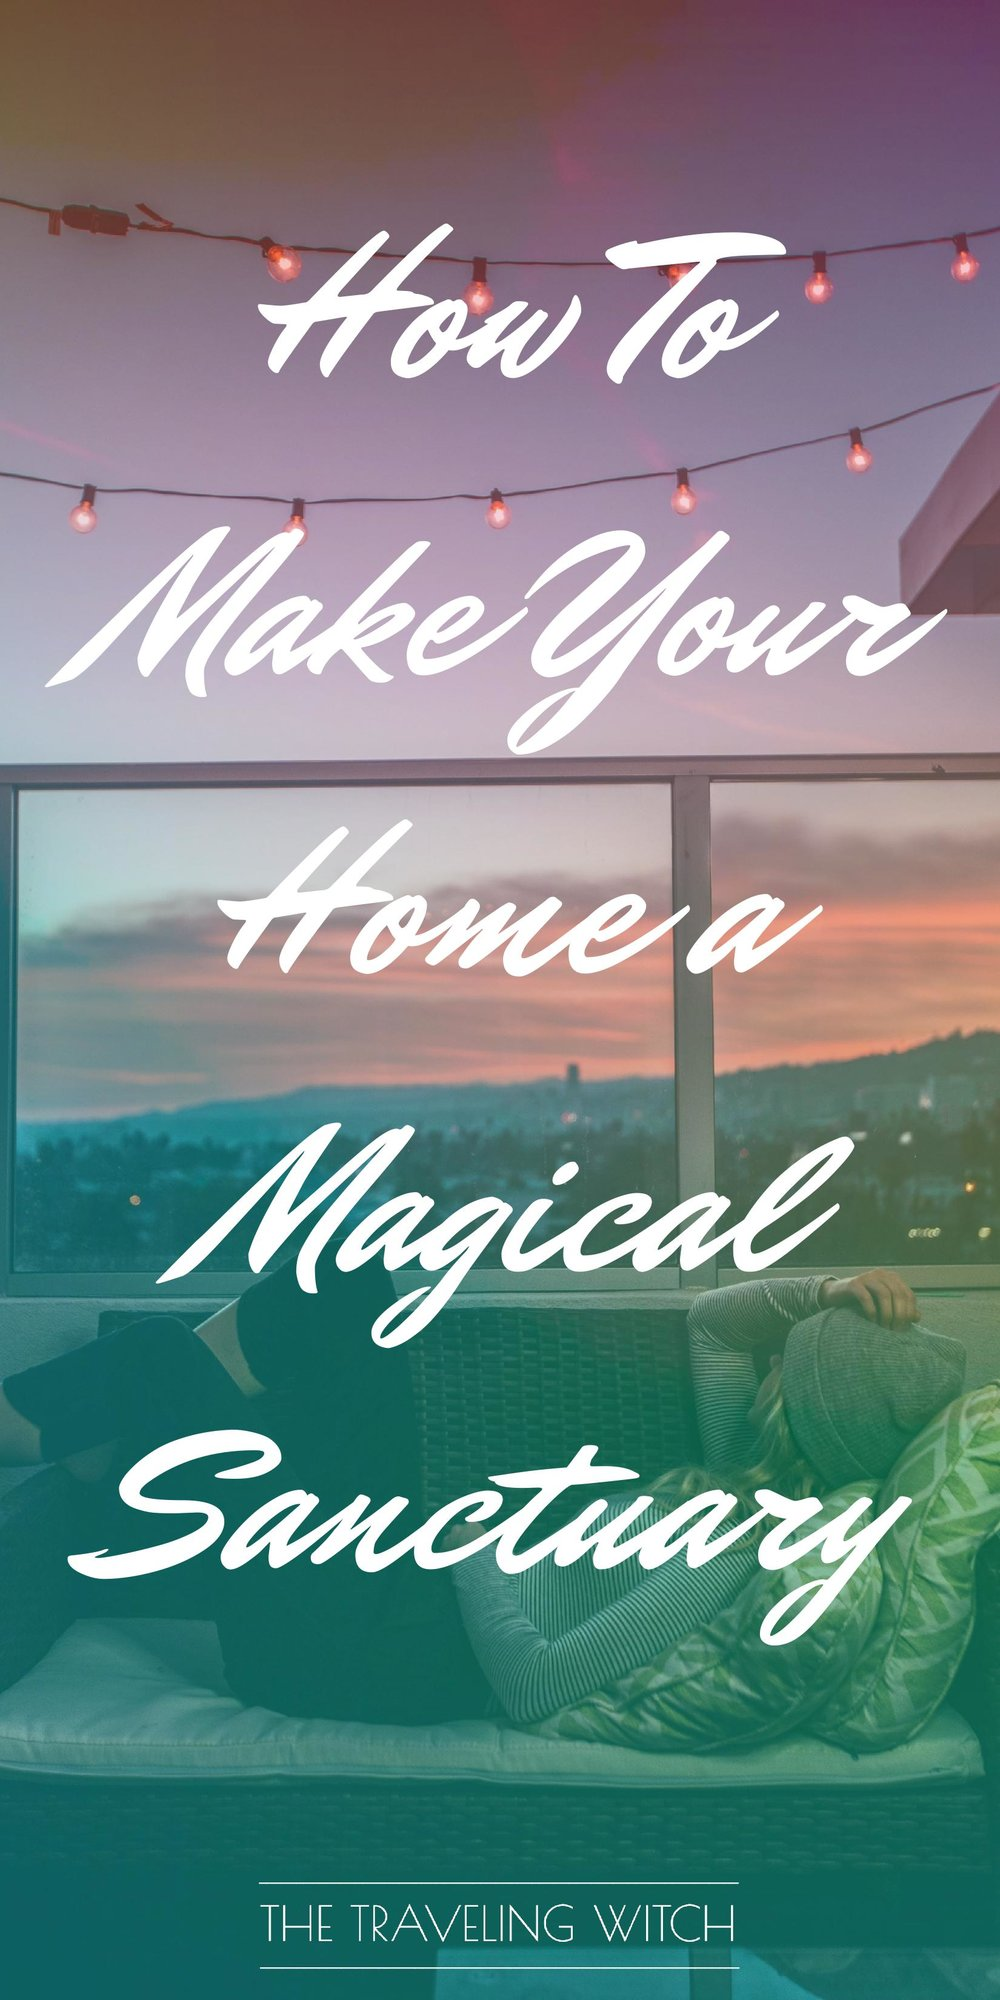 How To Make Your Home A Magical Sanctuary // The Traveling Witch